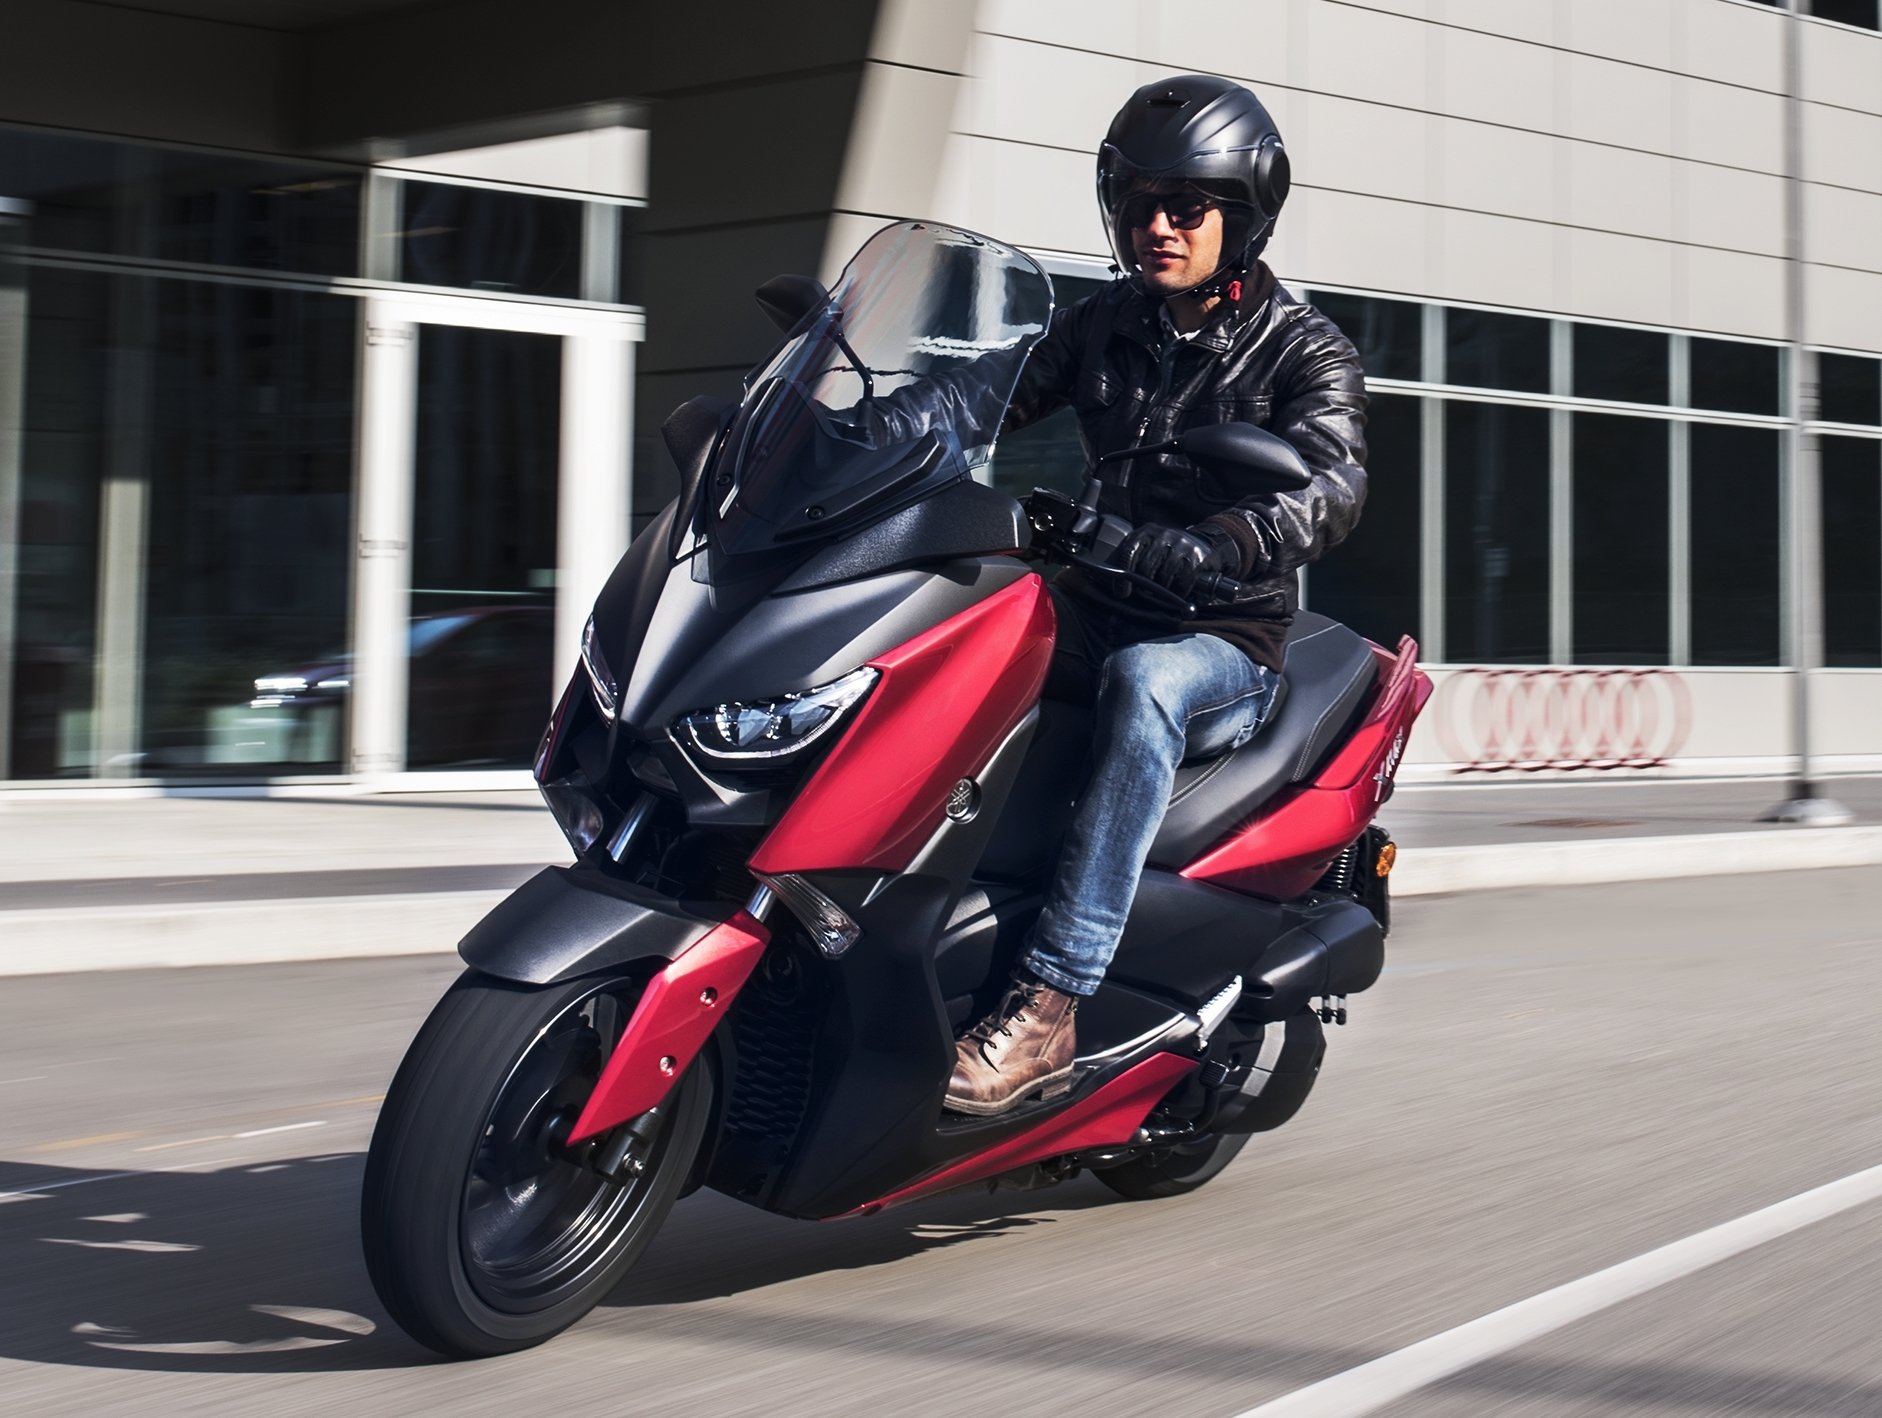 2018 yamaha x max 125 scooter released in europe paul tan image 709941. Black Bedroom Furniture Sets. Home Design Ideas